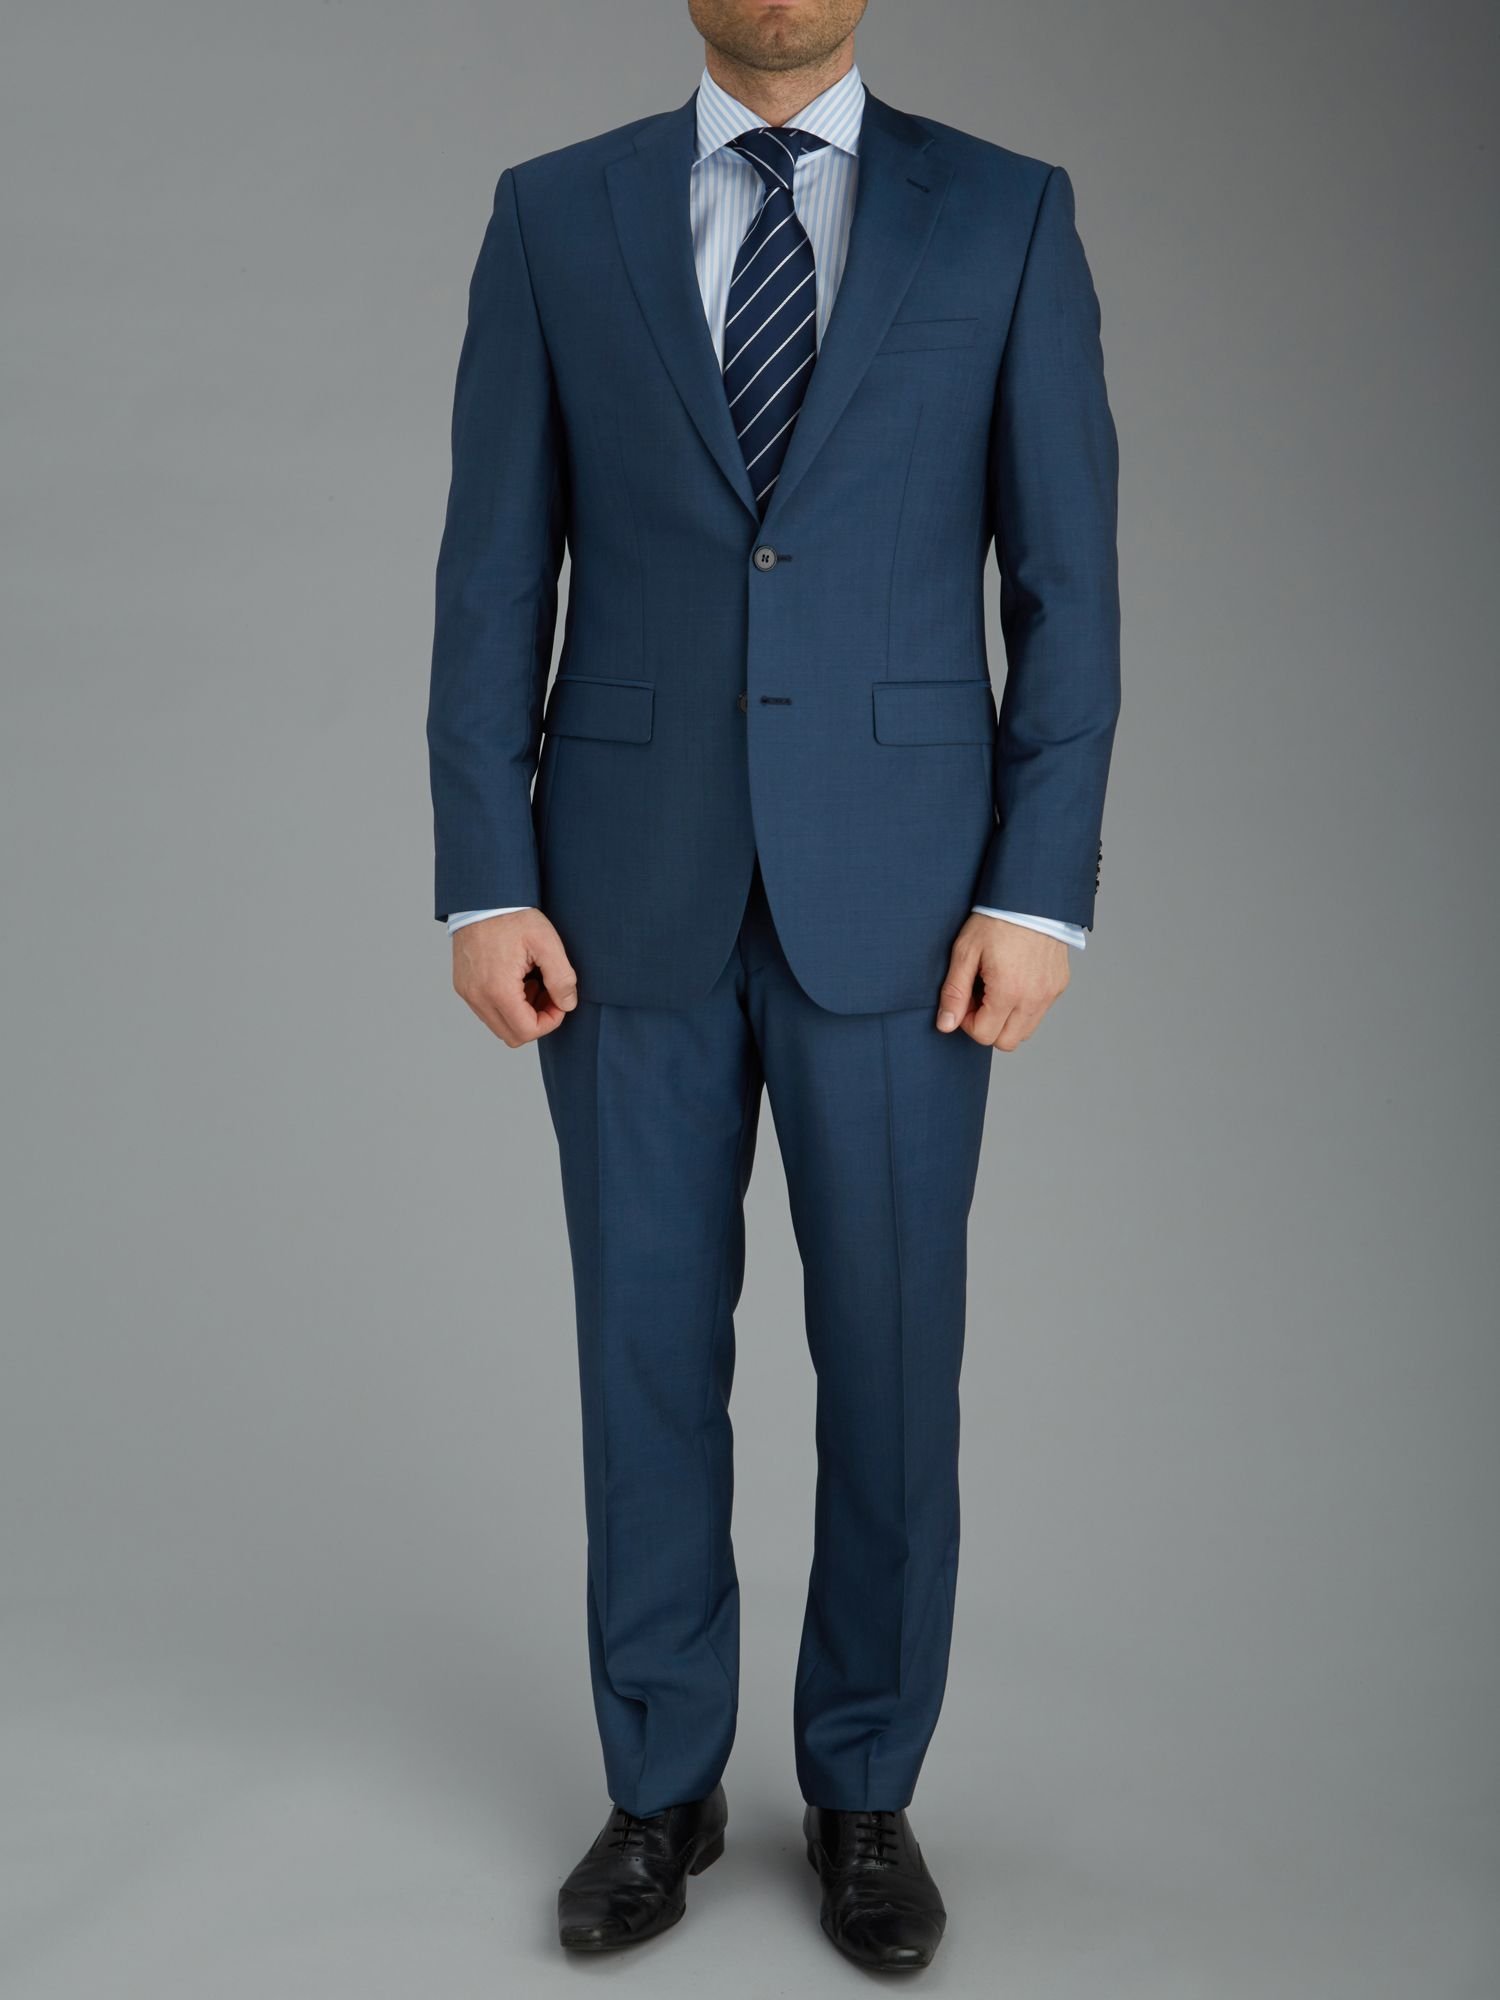 Mohair Look textured single breasted suit